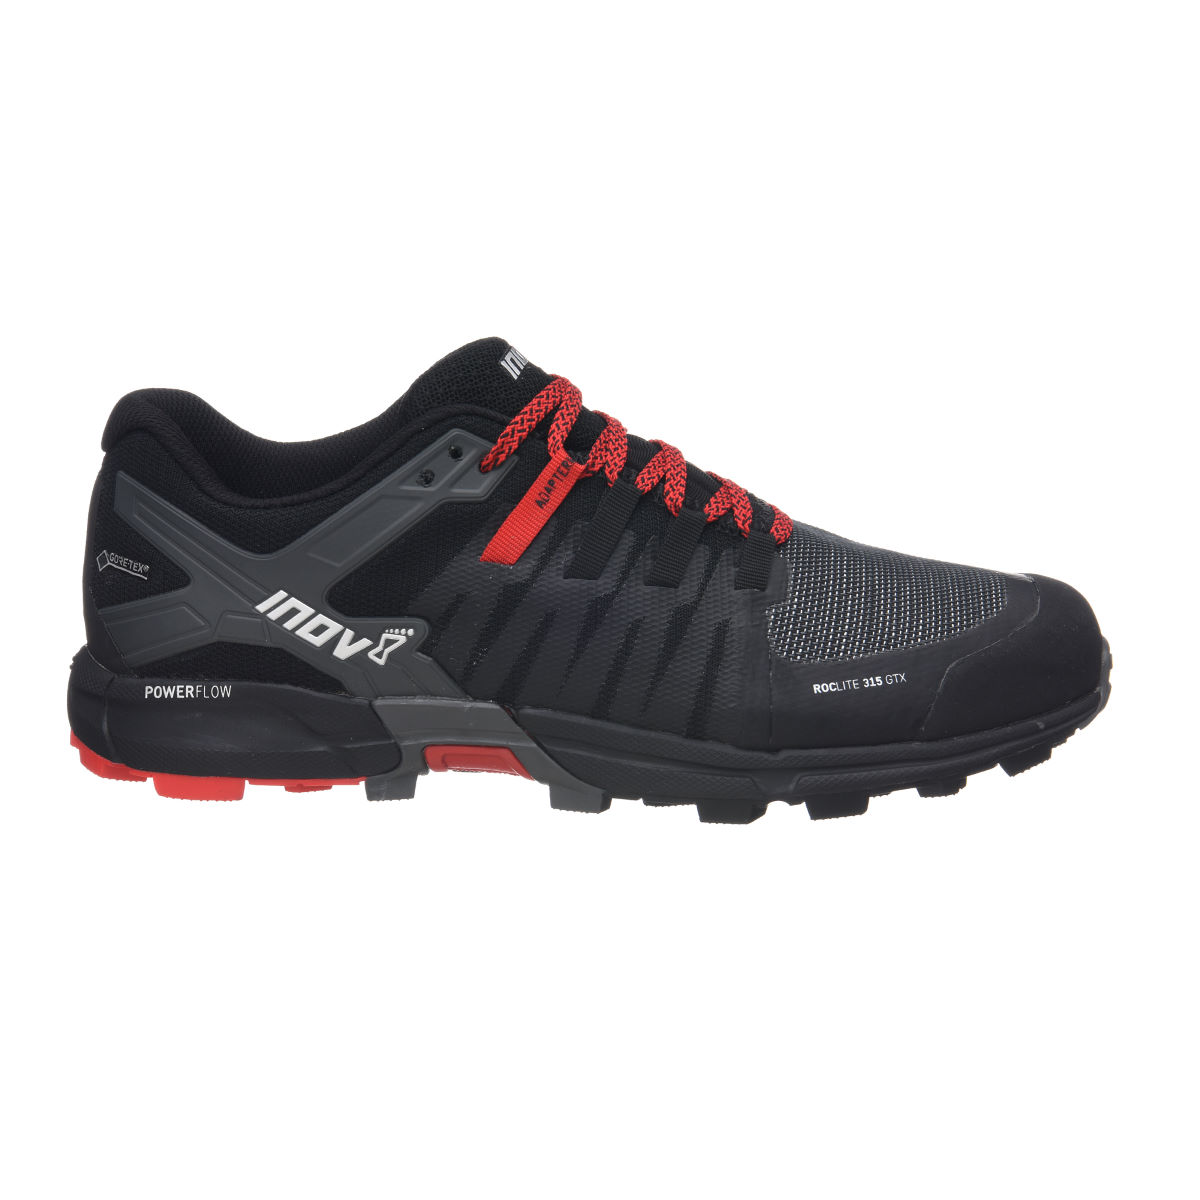 Inov-8 Roclite 315 Shoes - UK 9 Red/Black | Offroad Running Shoes